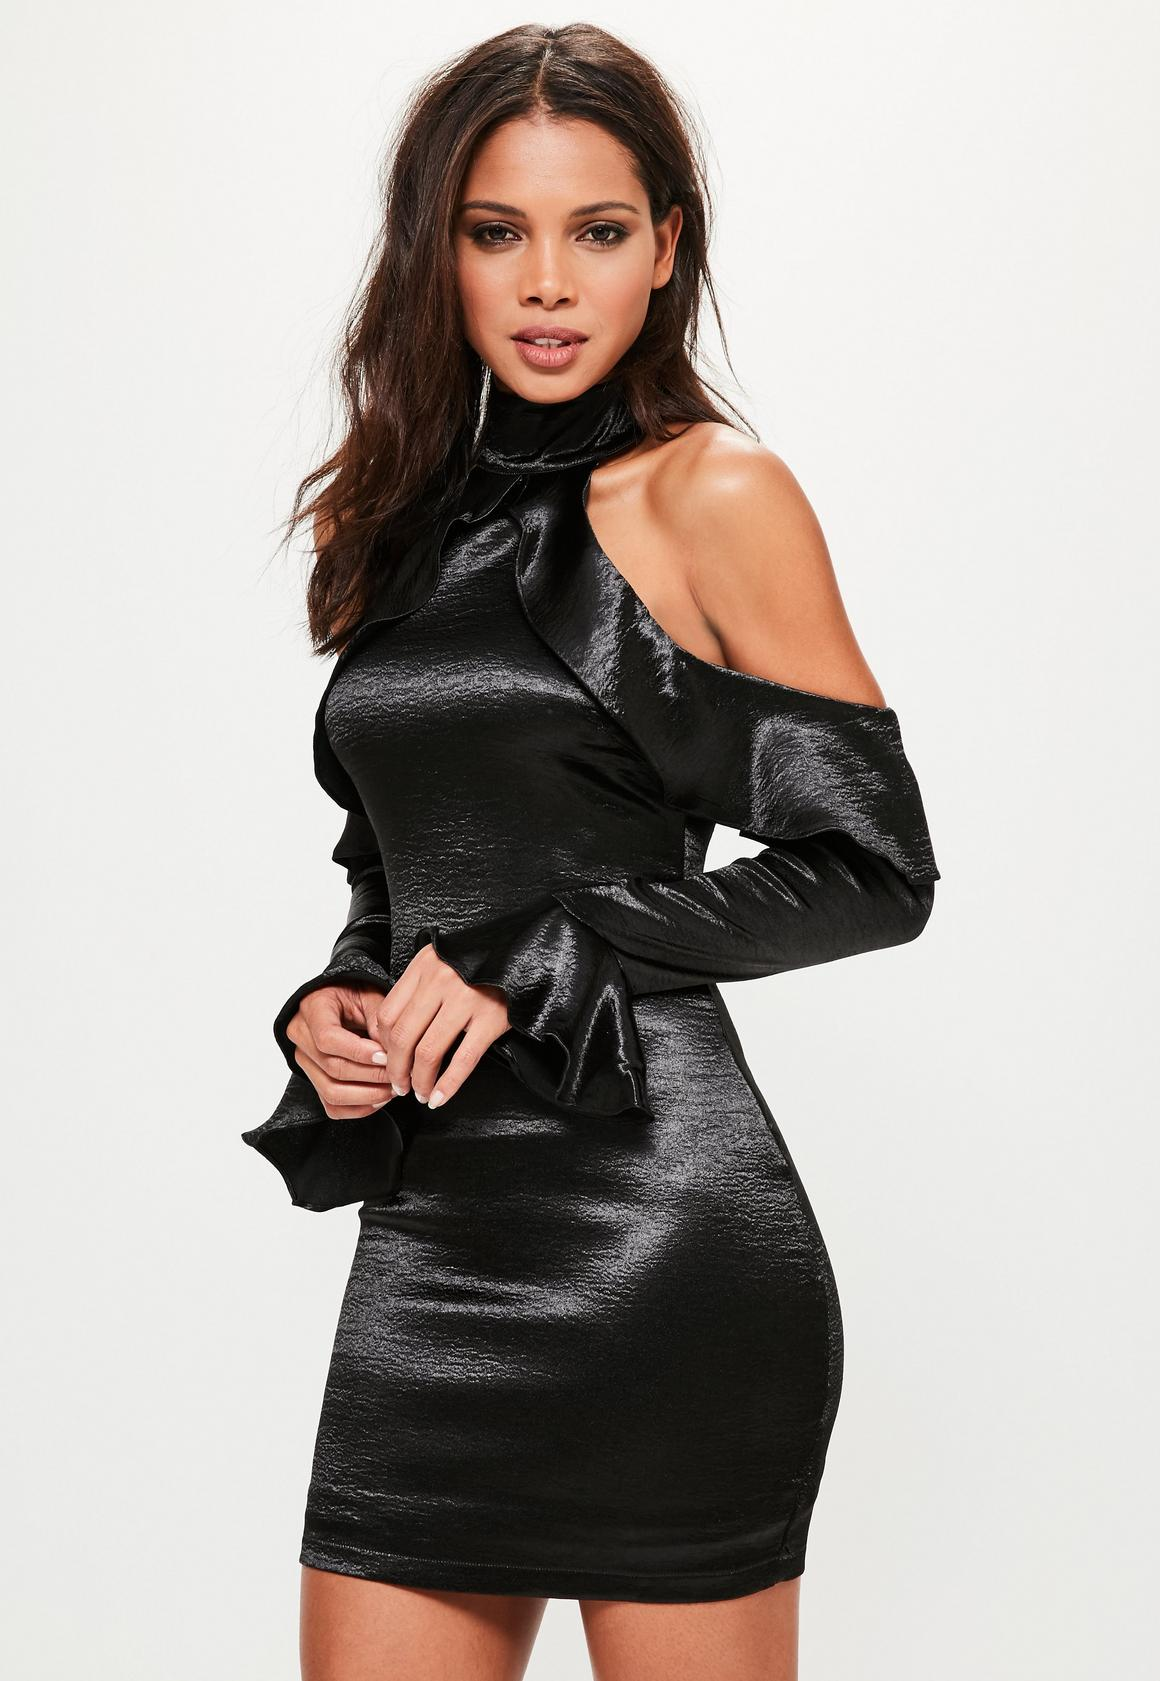 Shift Dresses - Women\'s Tunic Dresses Online | Missguided